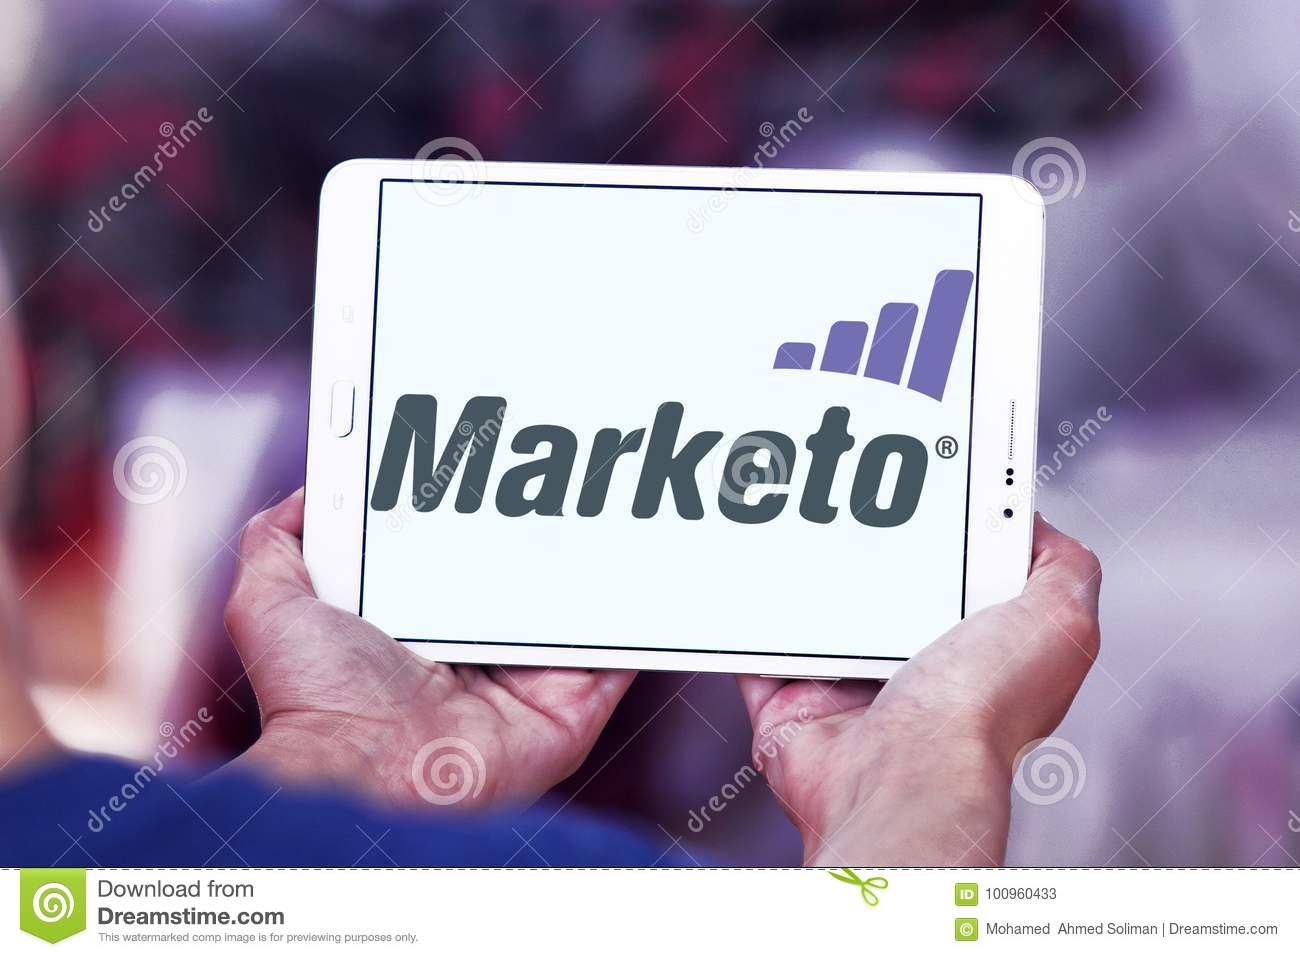 Marketo company logo editorial stock photo. Image of ...